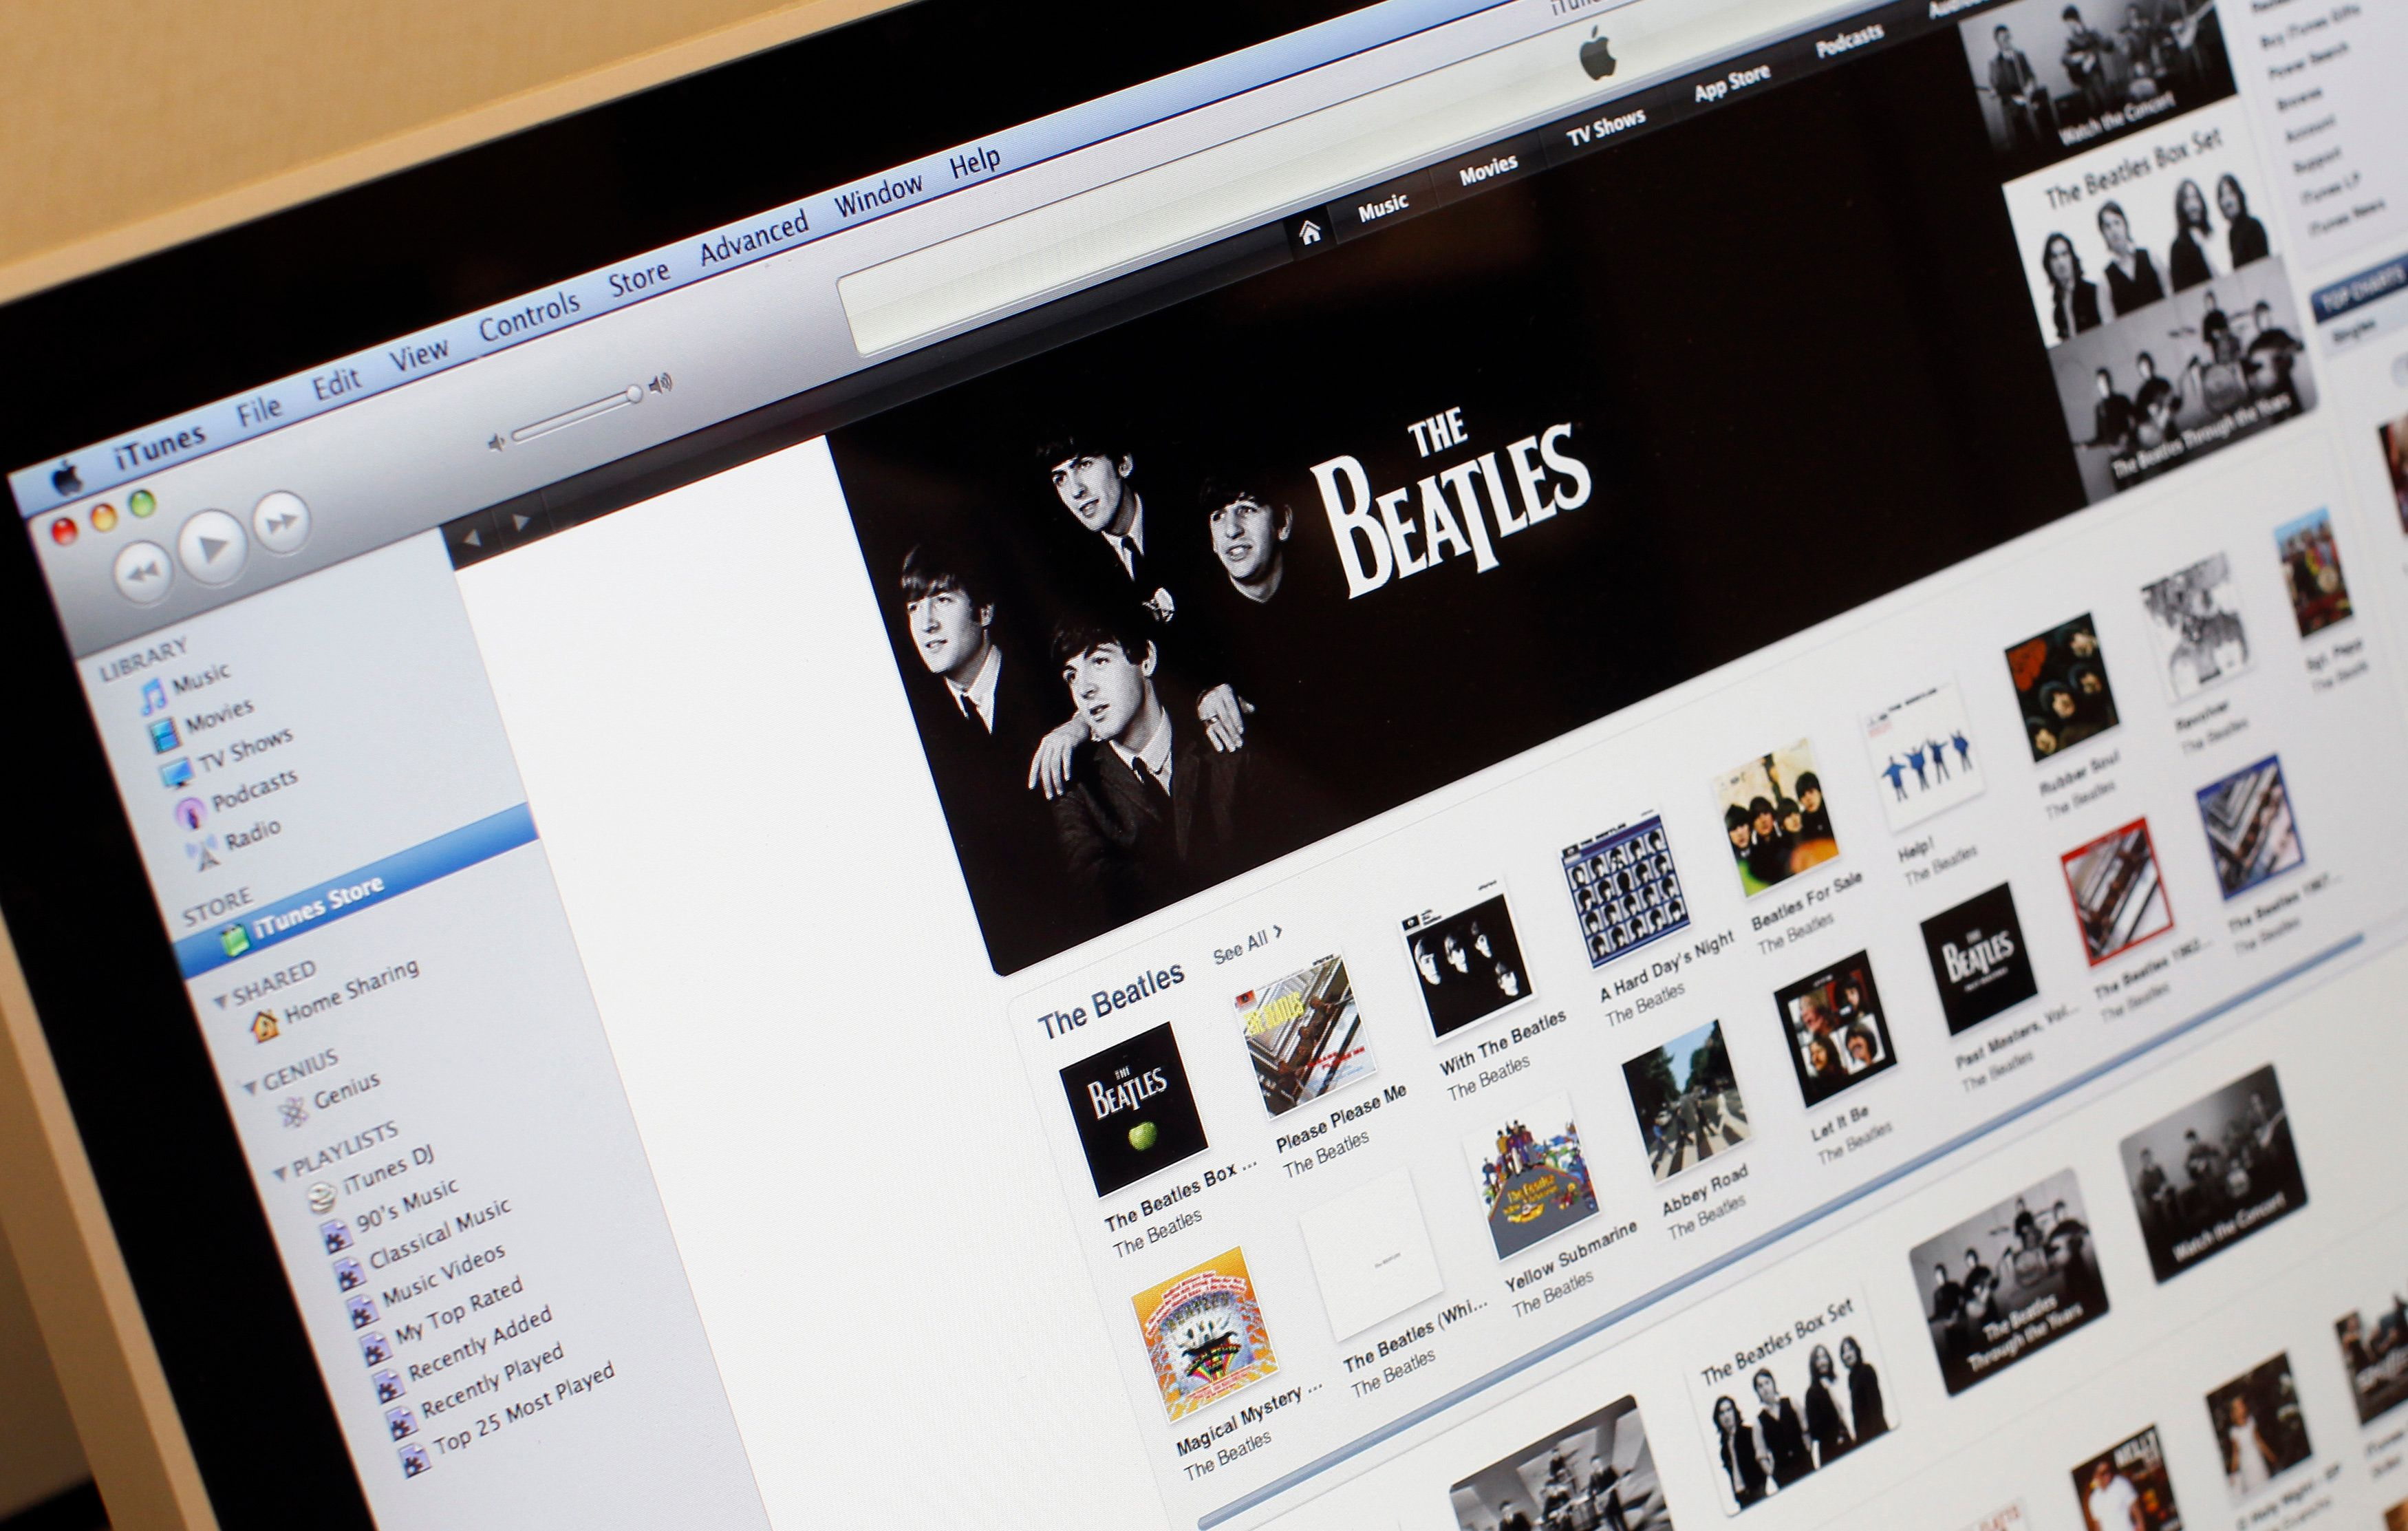 This iTunes Email Scam Looks So Authentic It's Catching People